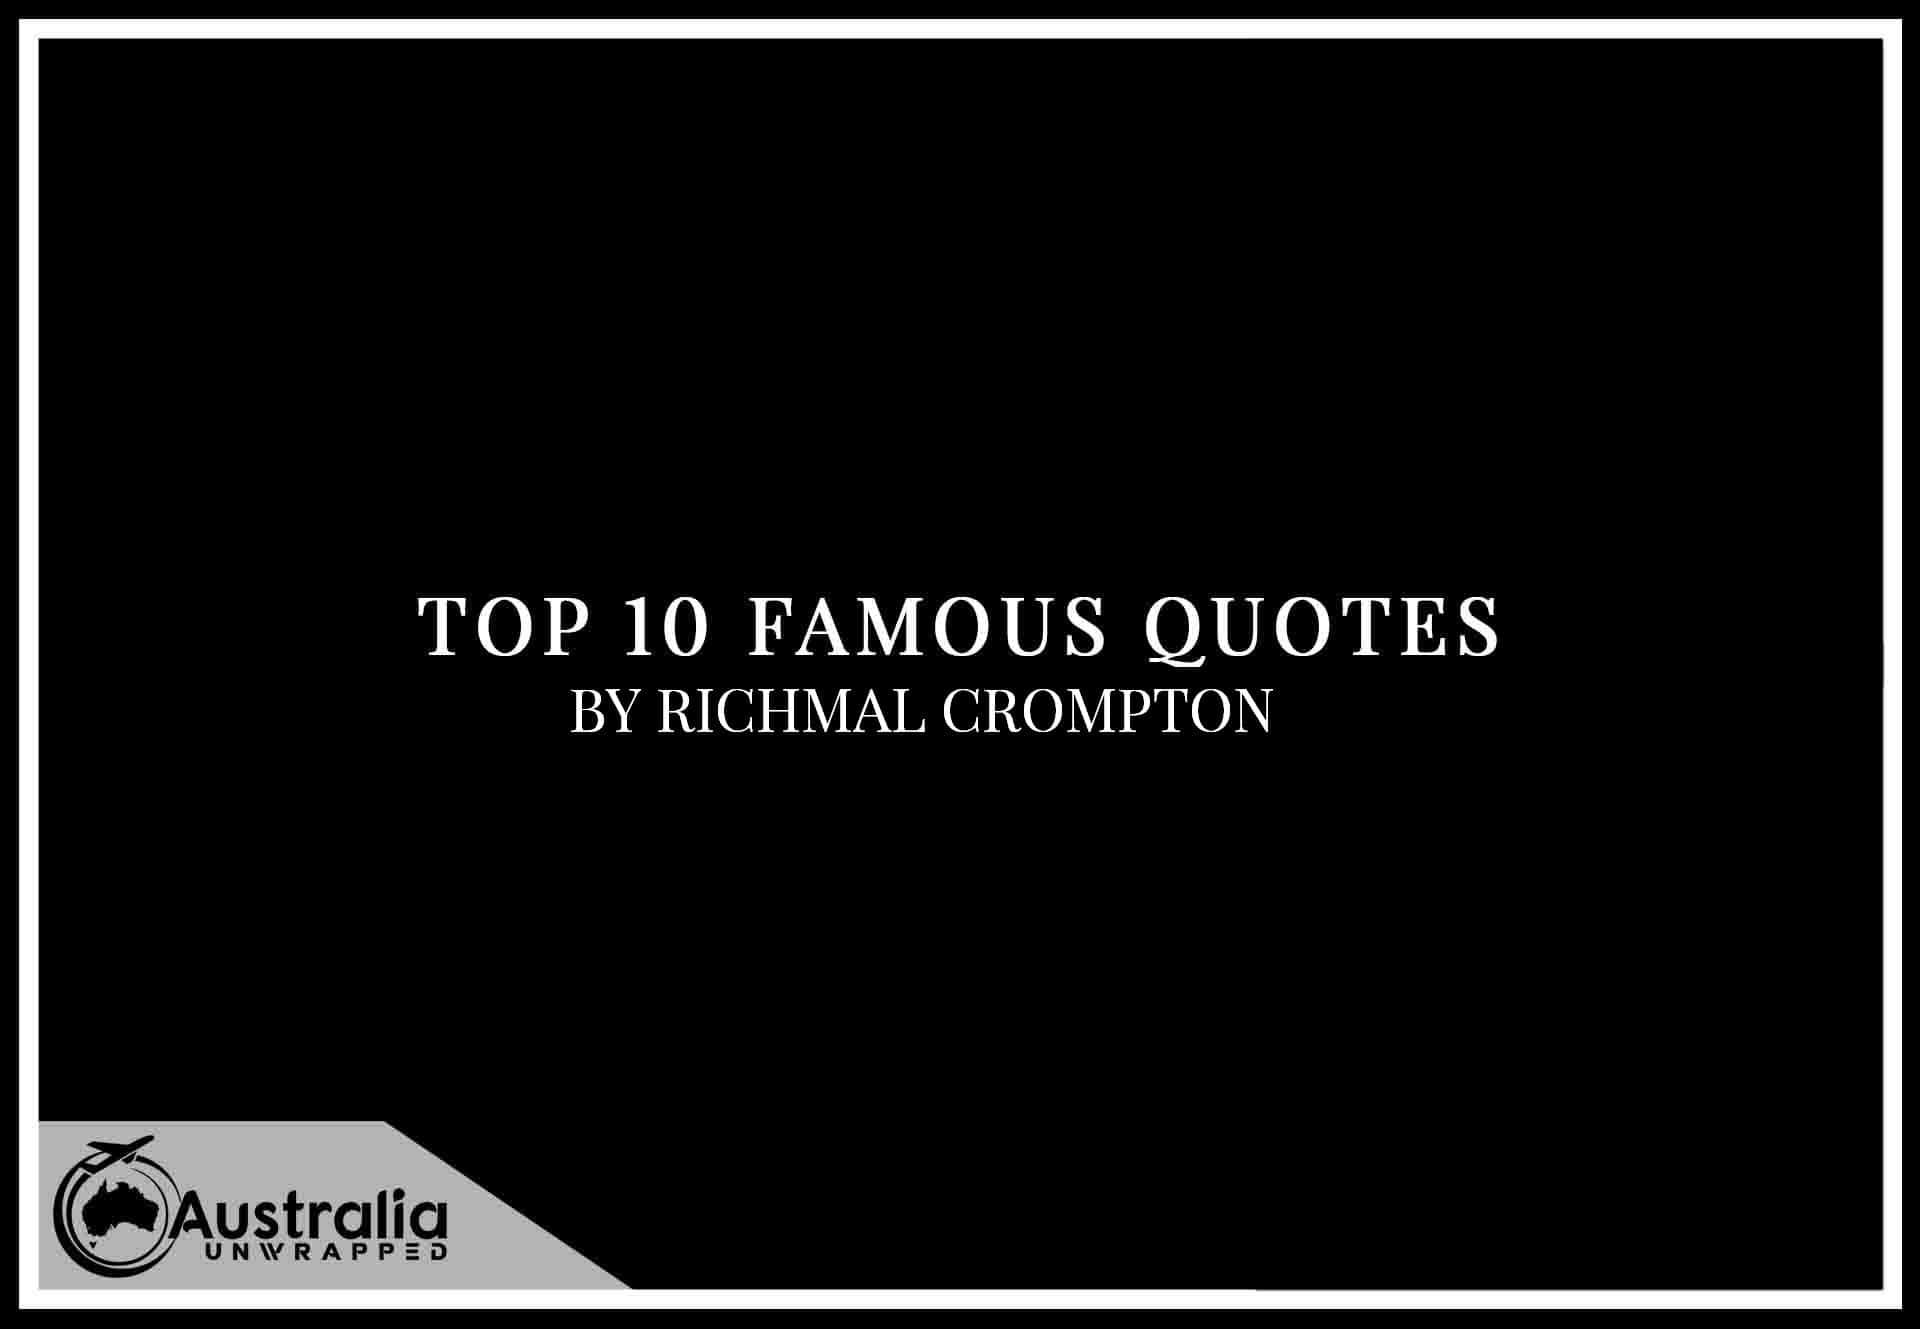 Top 10 Famous Quotes by Author Richmal Crompton